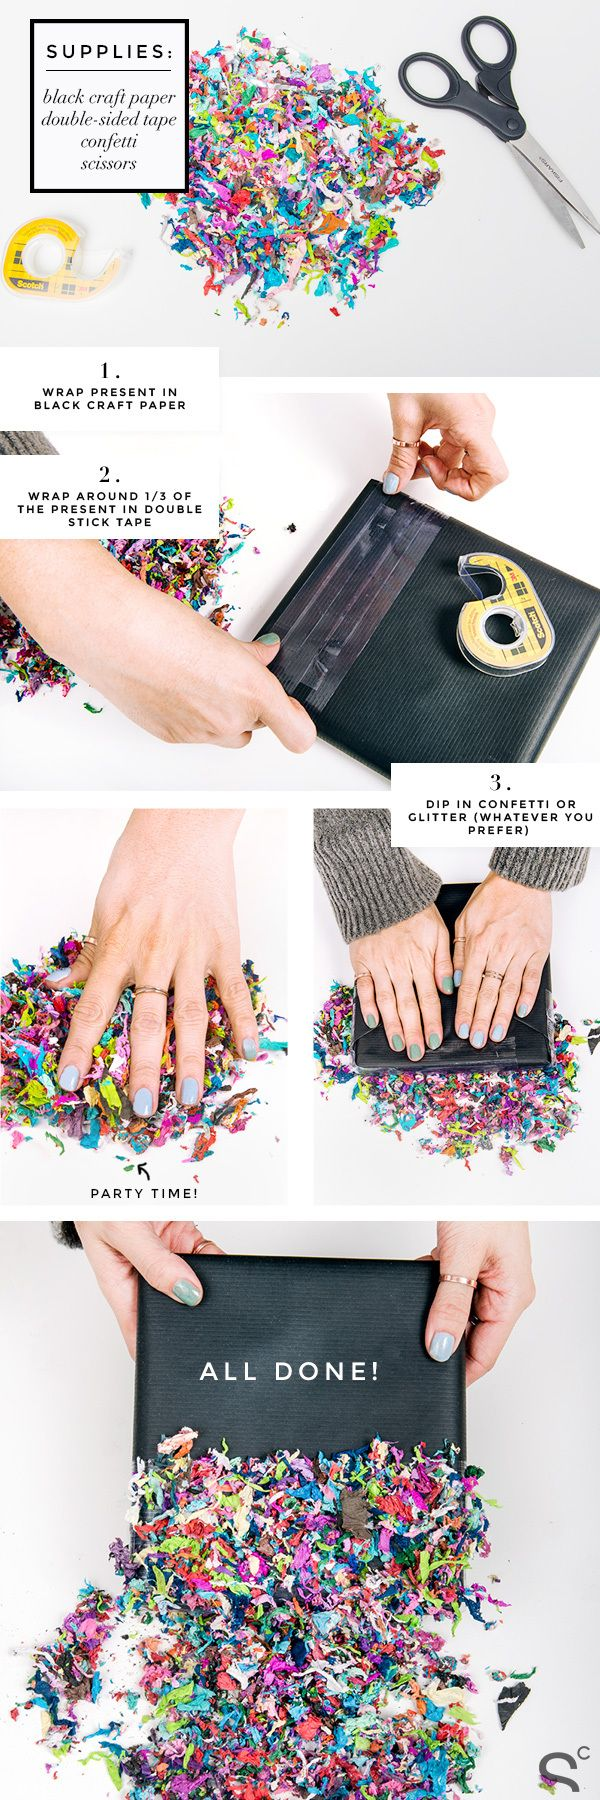 DIY+Confetti+Dipped+Presents:+Our+Step-By-Step+Guide+|+StyleCaster